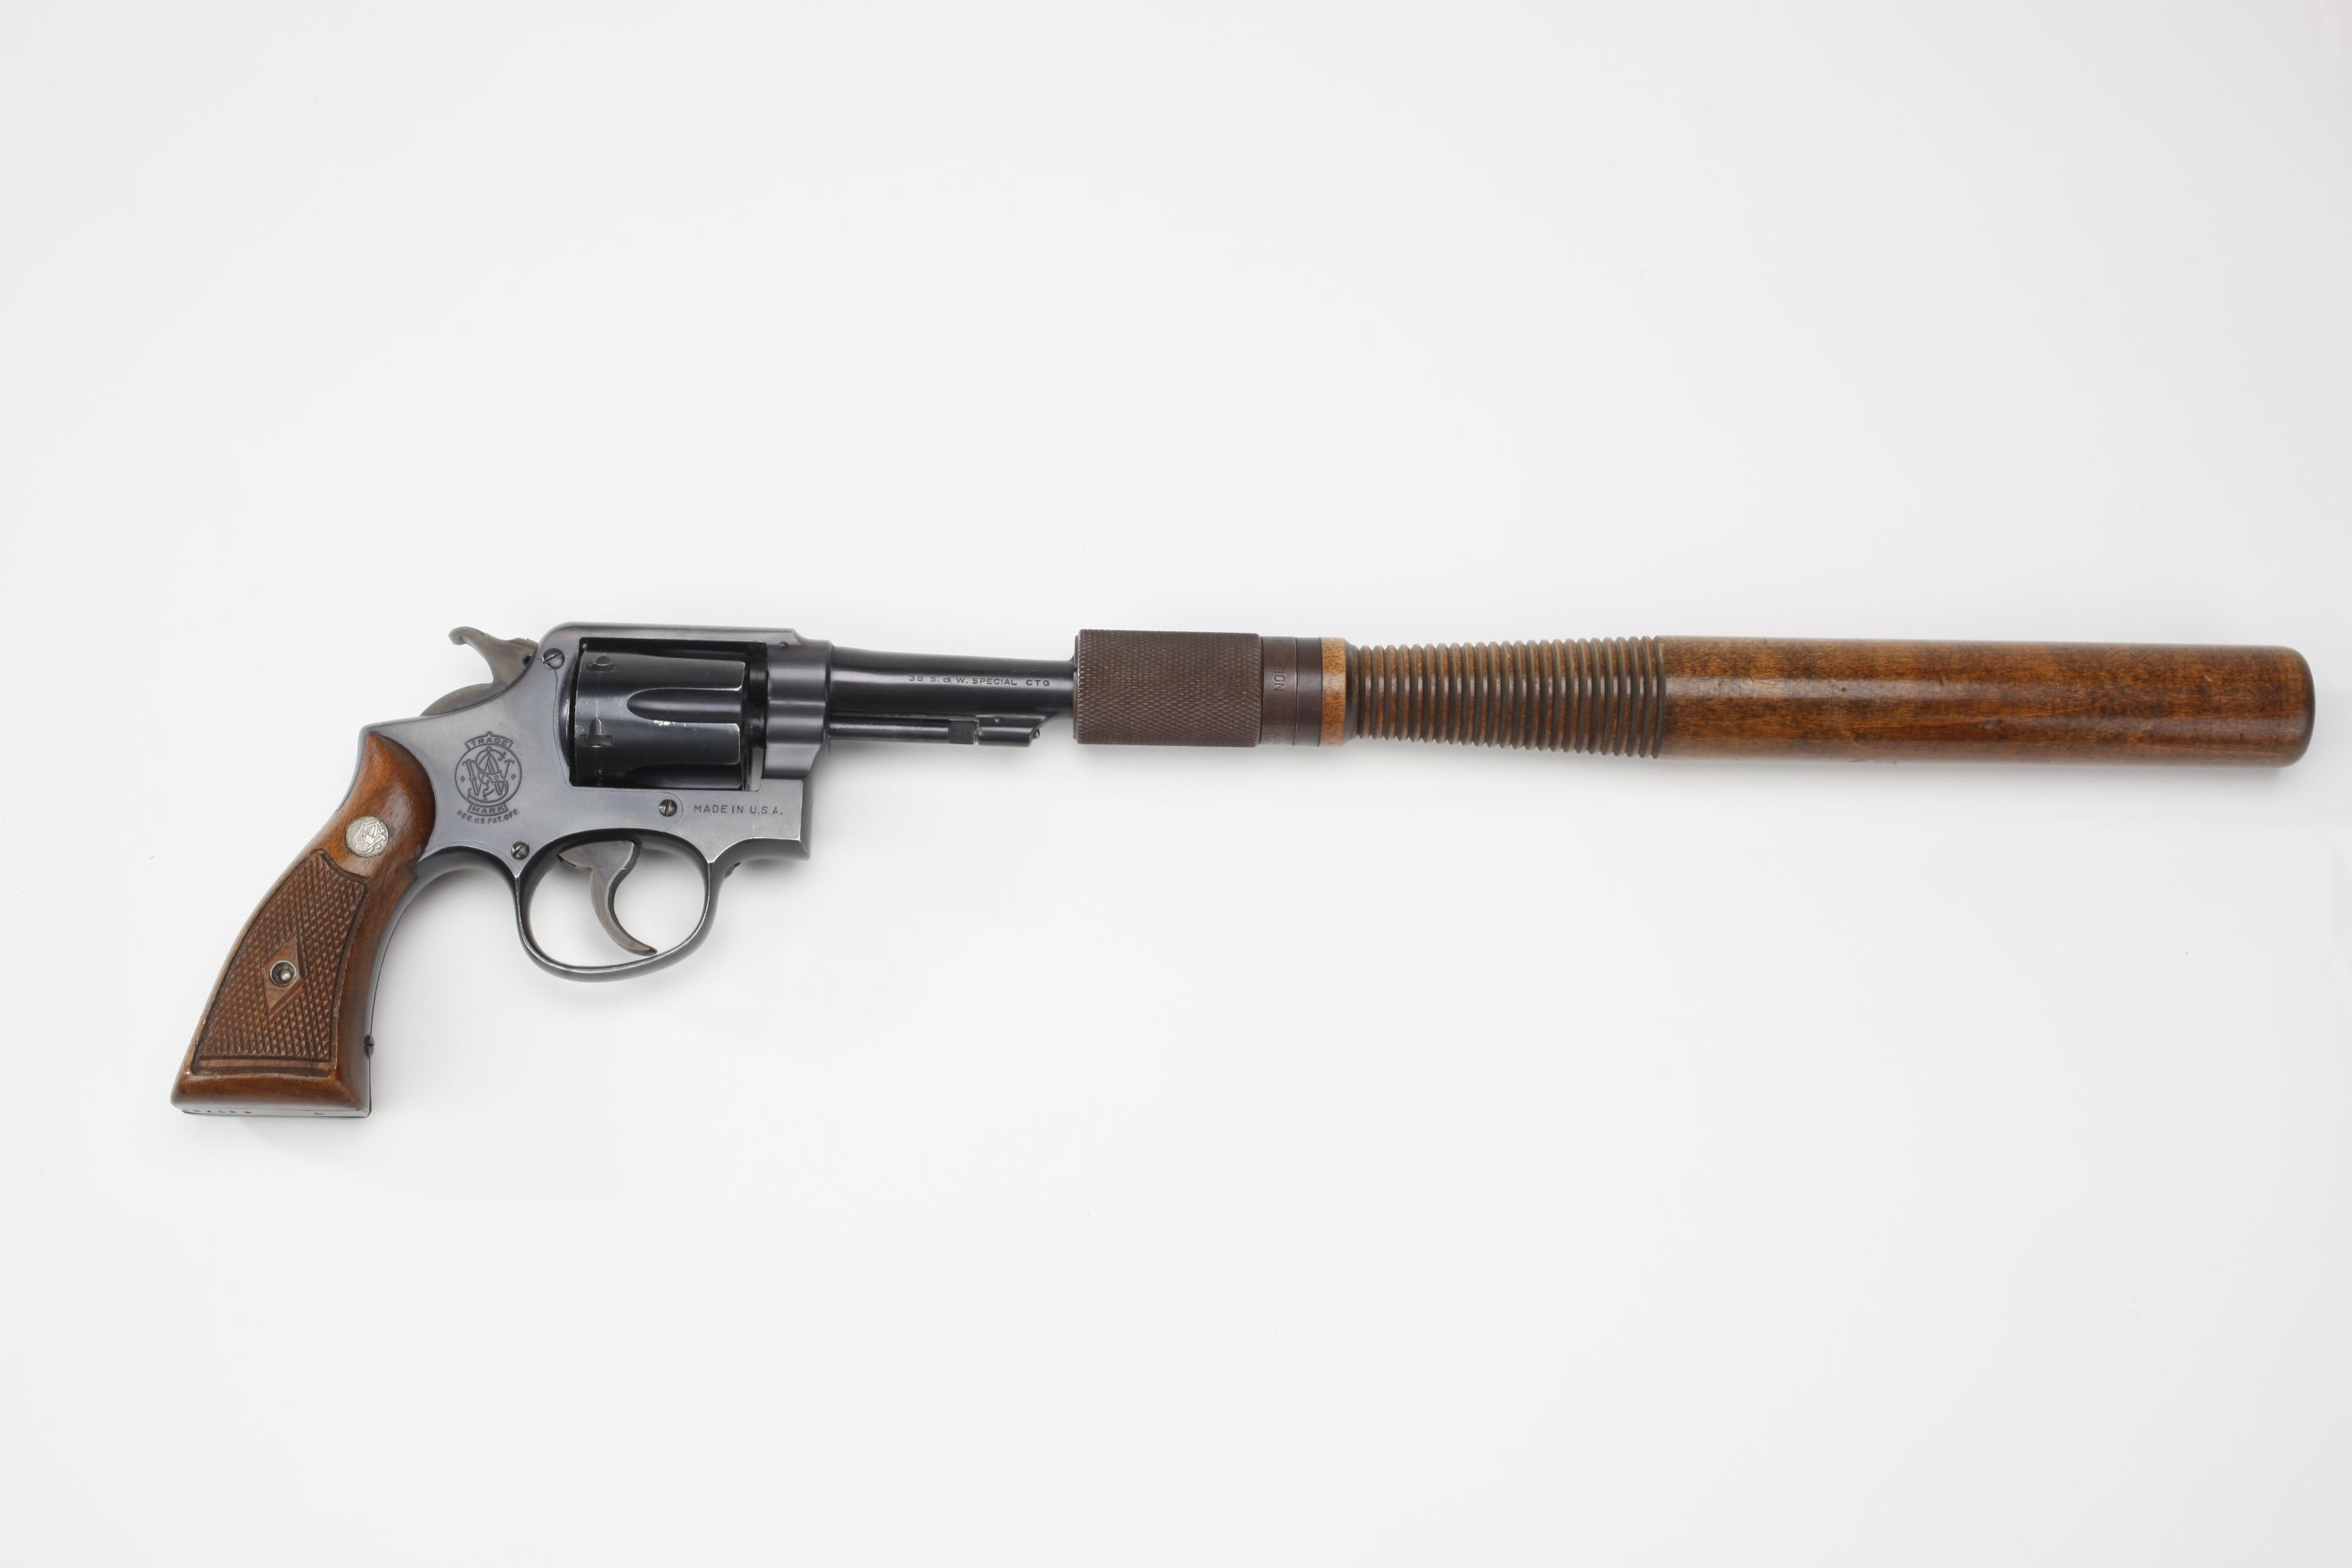 Smith & Wesson Model 10 Military and Police Revolver with Police Club Extension